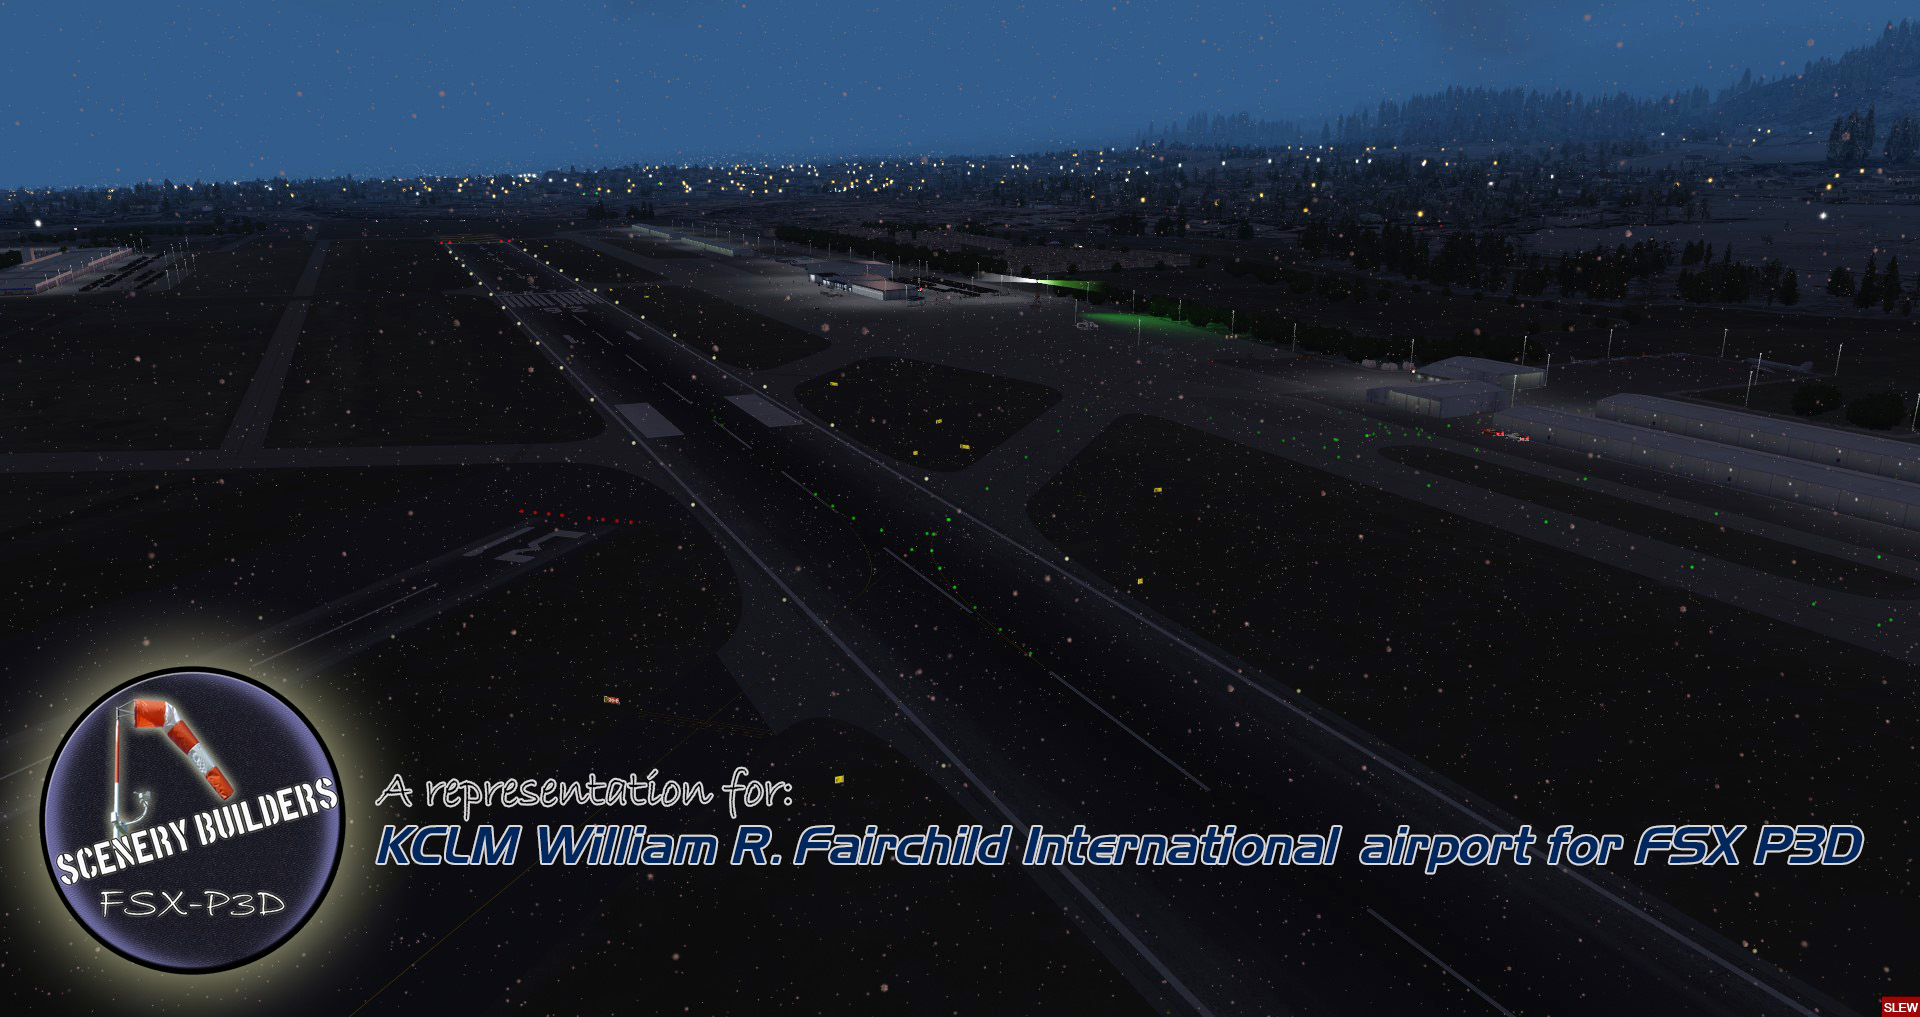 FSXCENERY - KCLM WILLIAM R. FAIRCHILD INTERNATIONAL AIRPORT FSX P3D